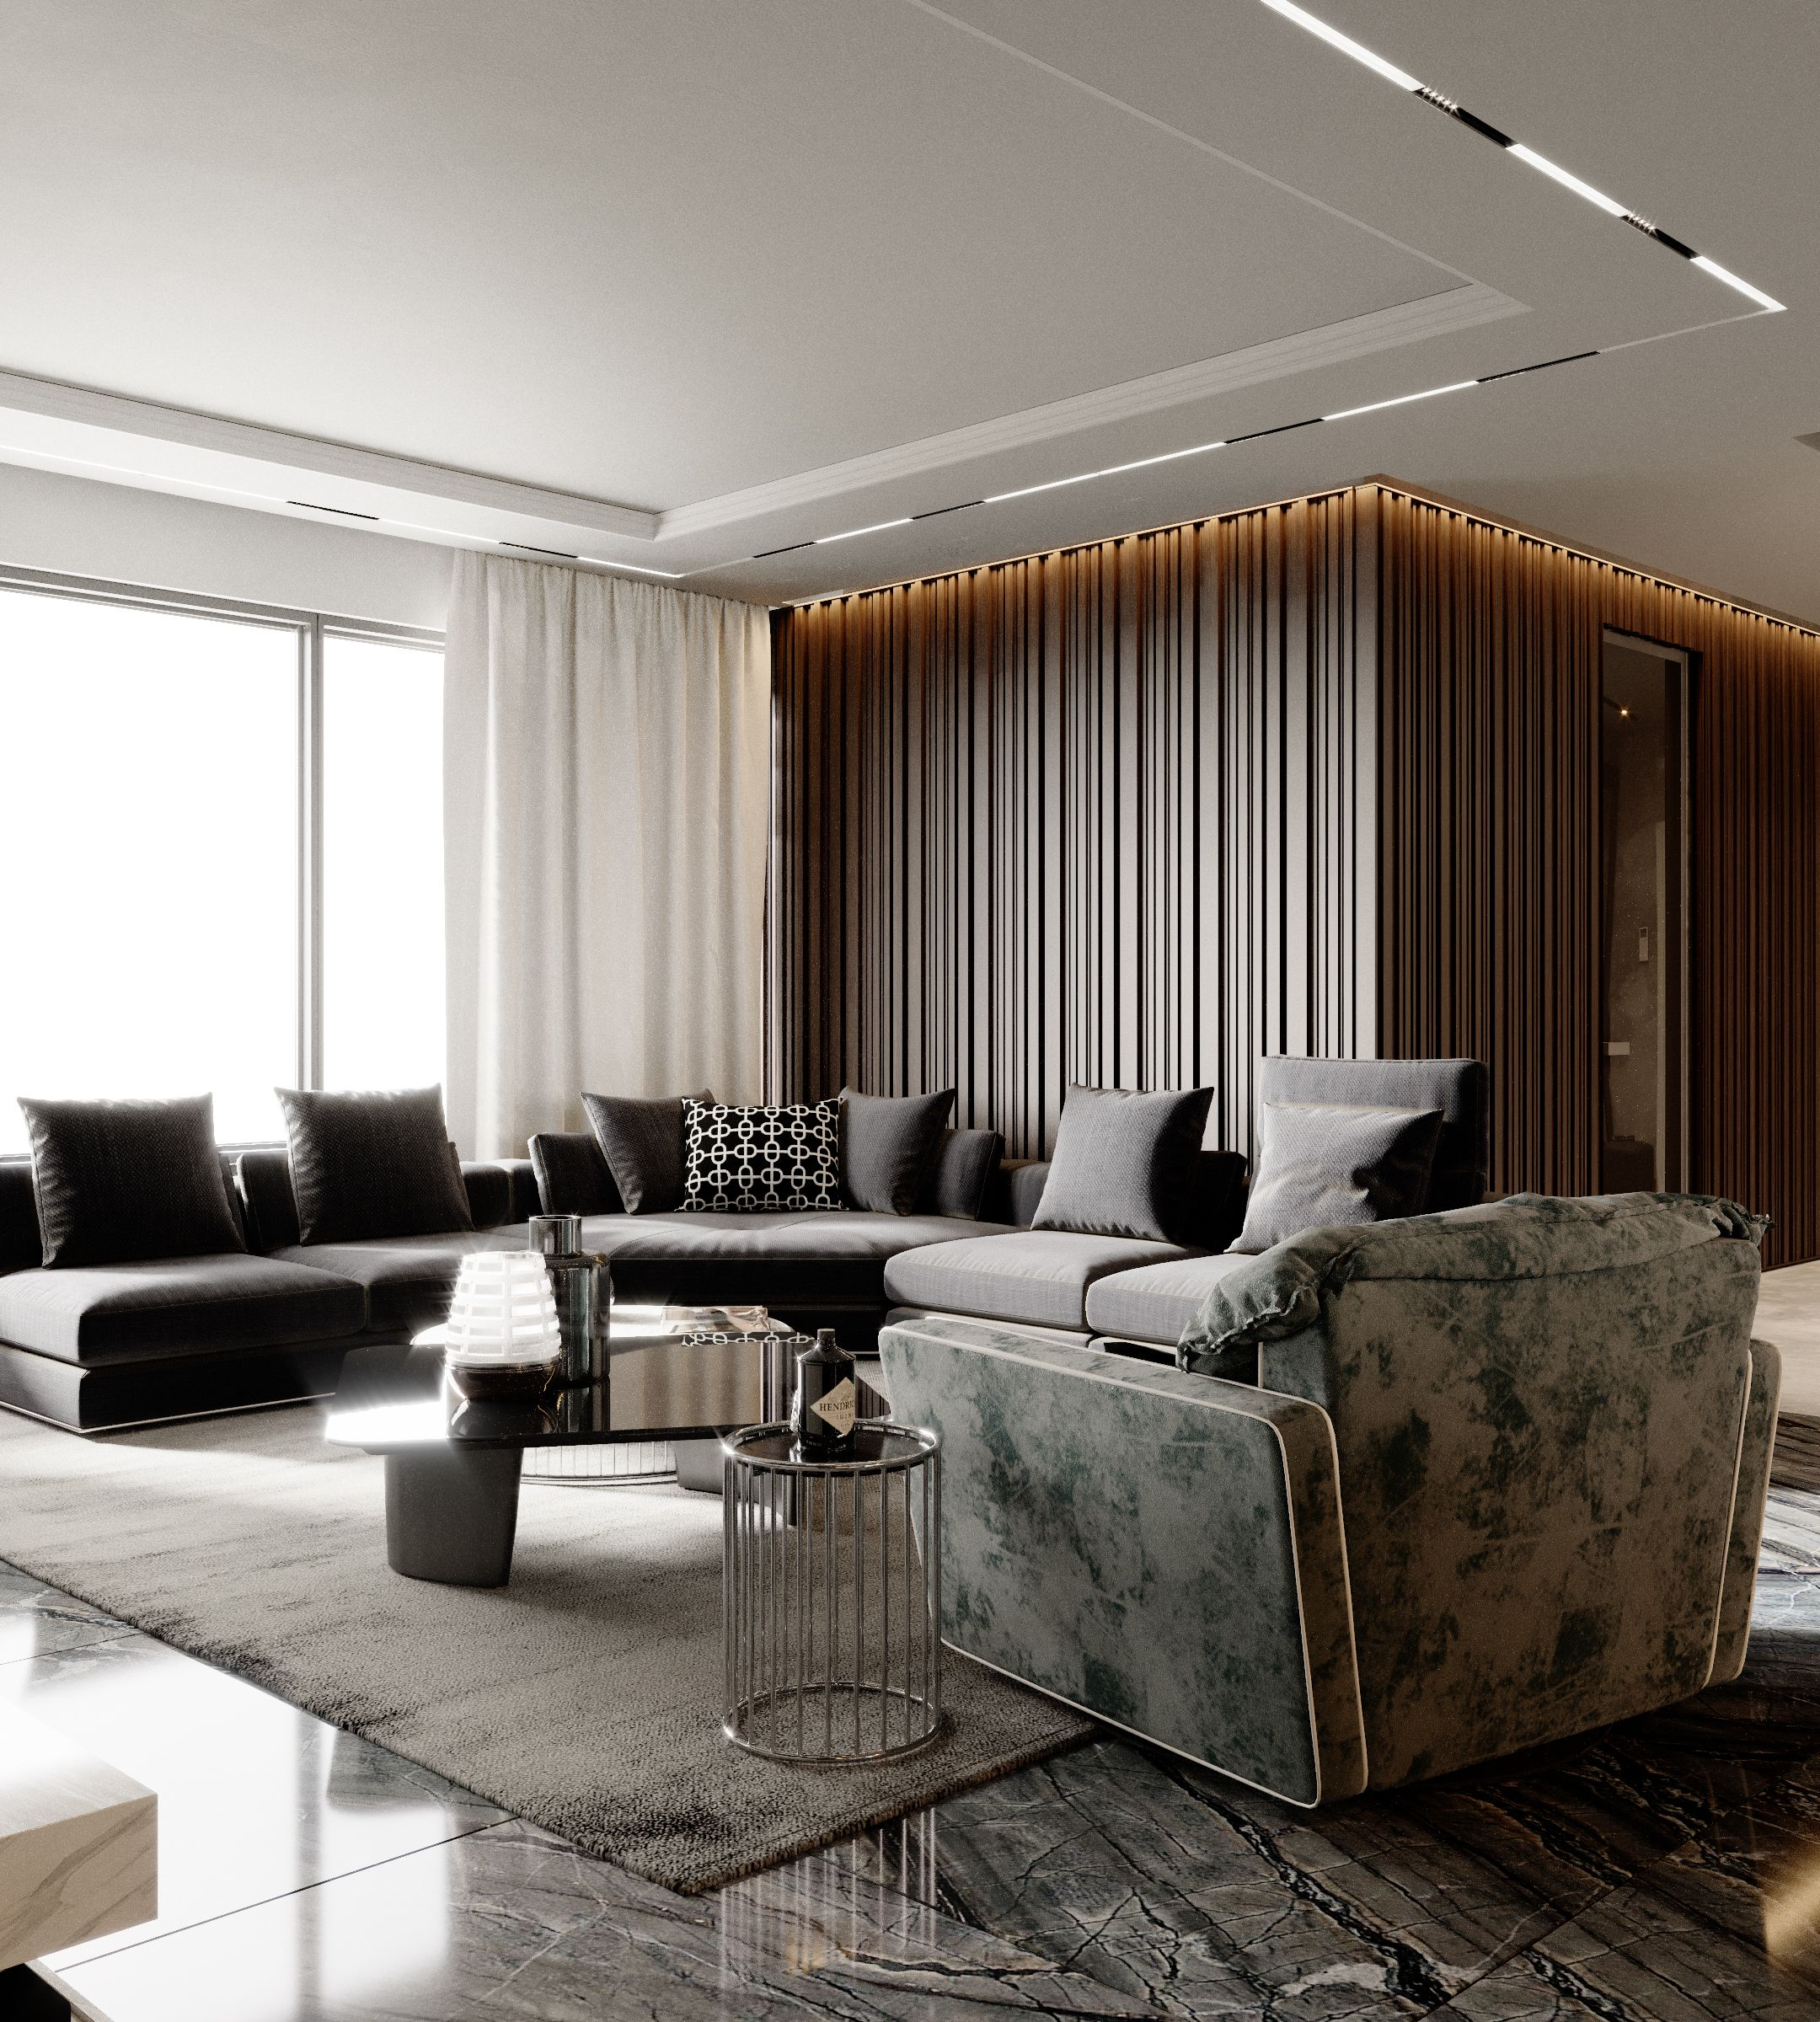 Apartment Lux 018 on Behance | False ceiling living room ...